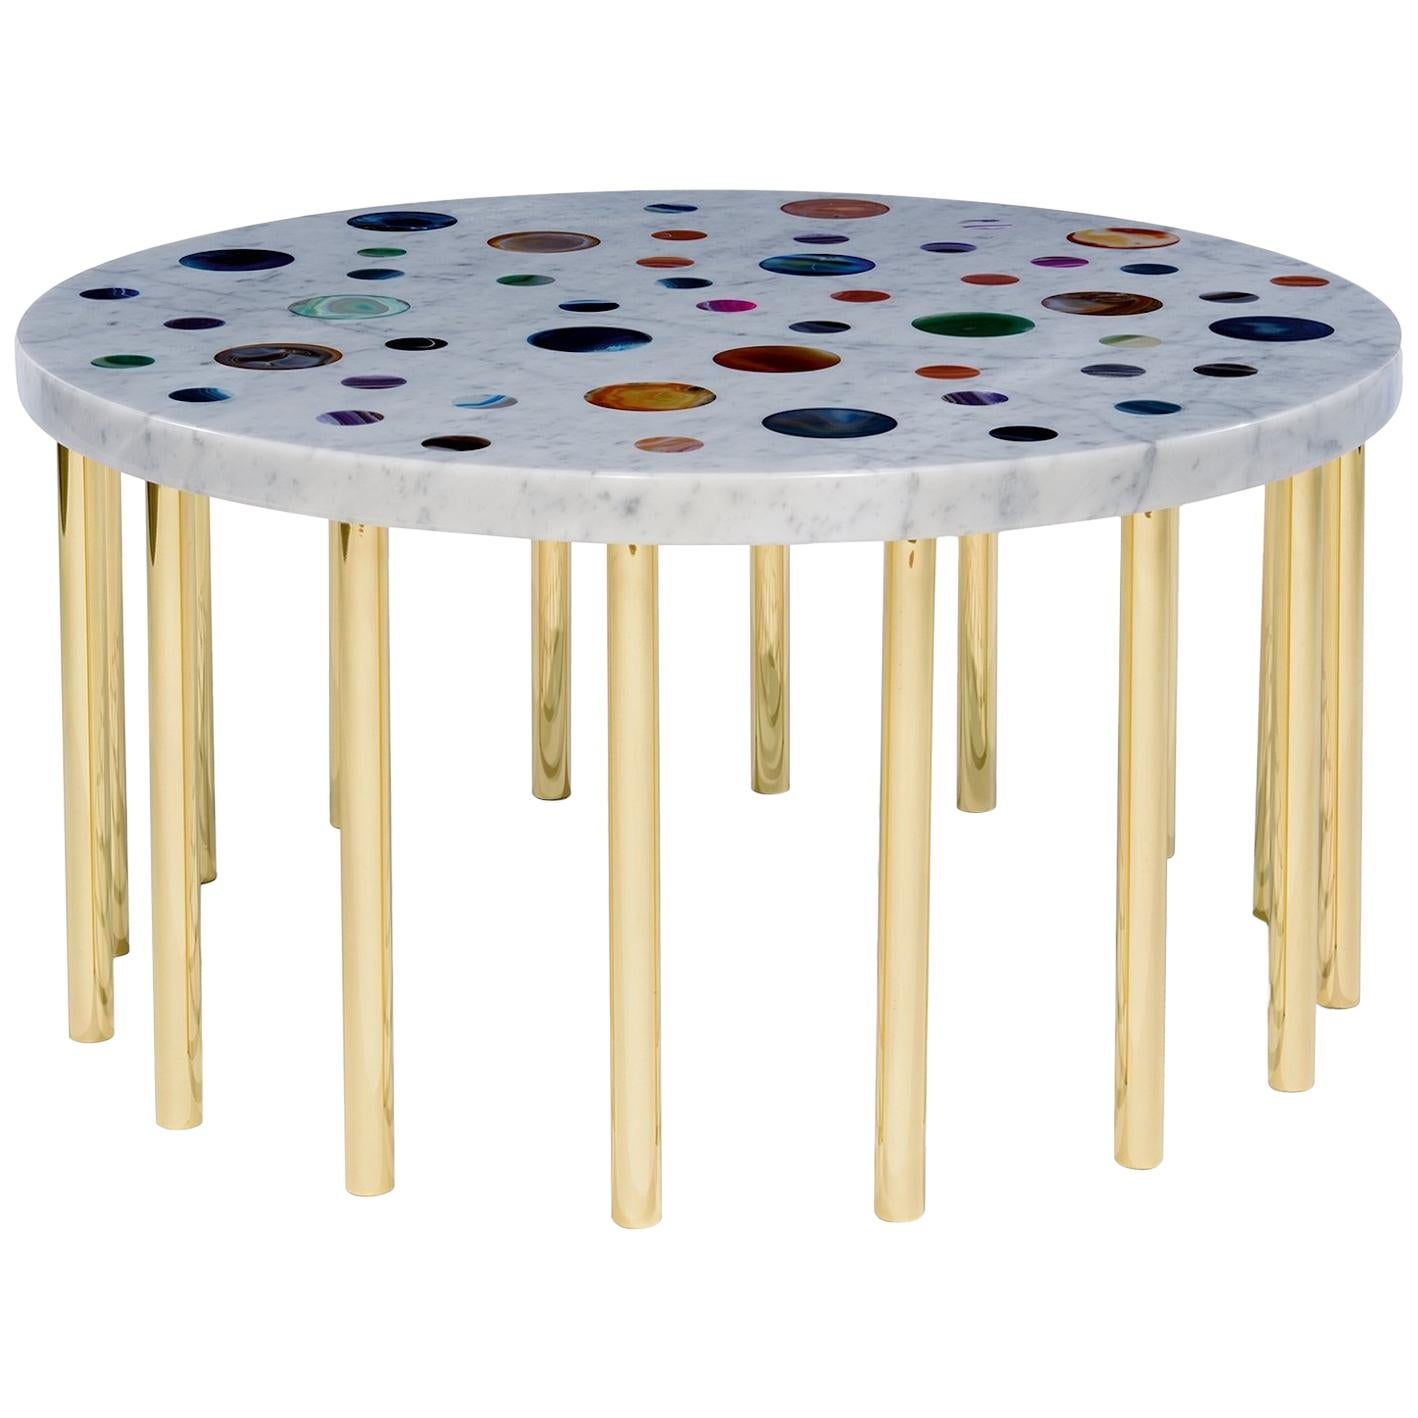 Cosmos Coffee Table by Studio Superego, Italy